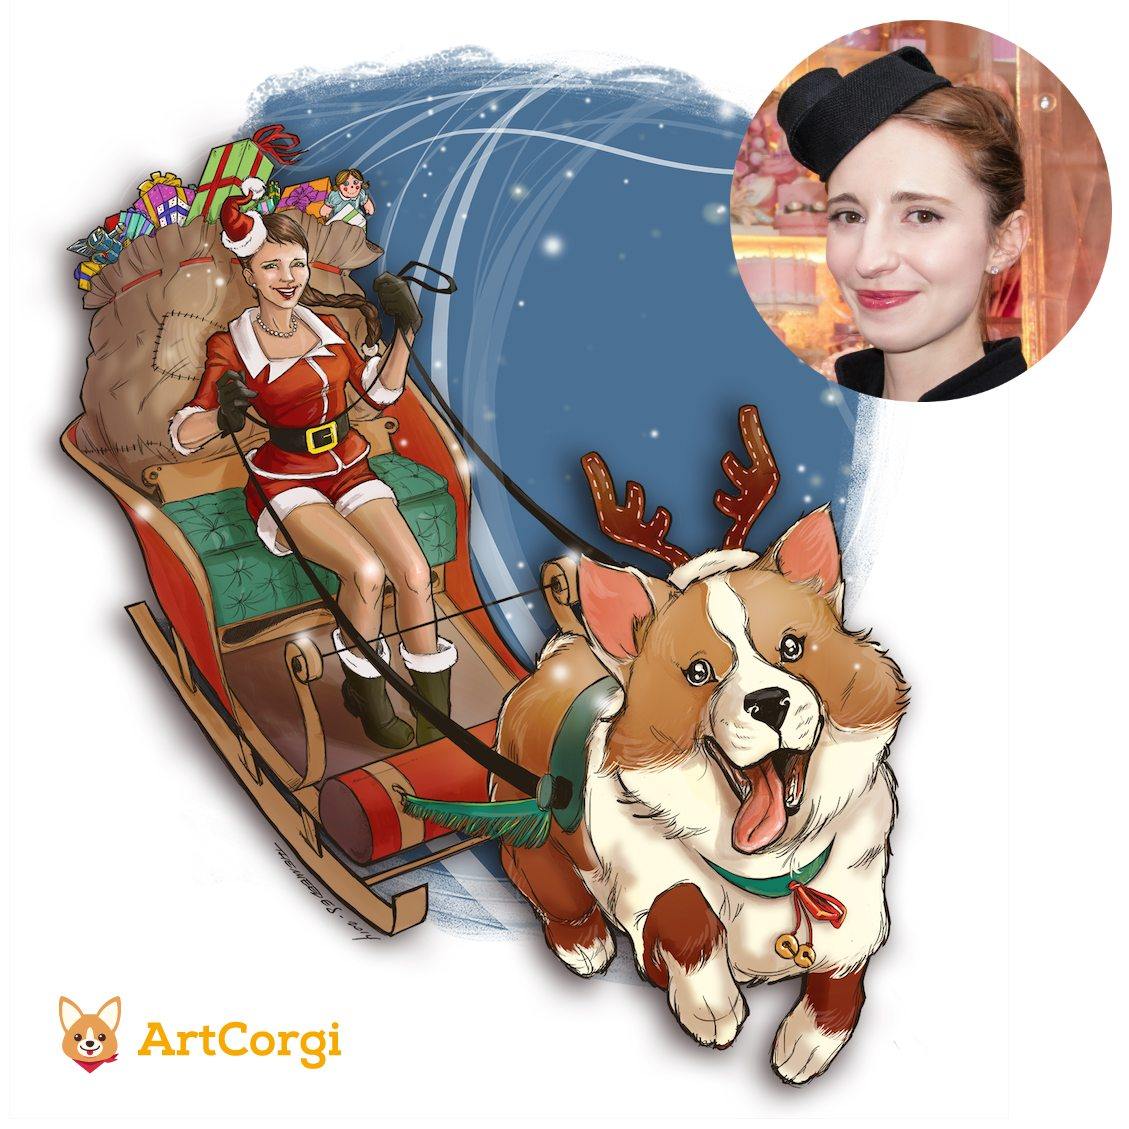 Christmas Simone and ArtCorgi Corgi with Santas Sleigh Before and After by TheMeeDes via ArtCorgi